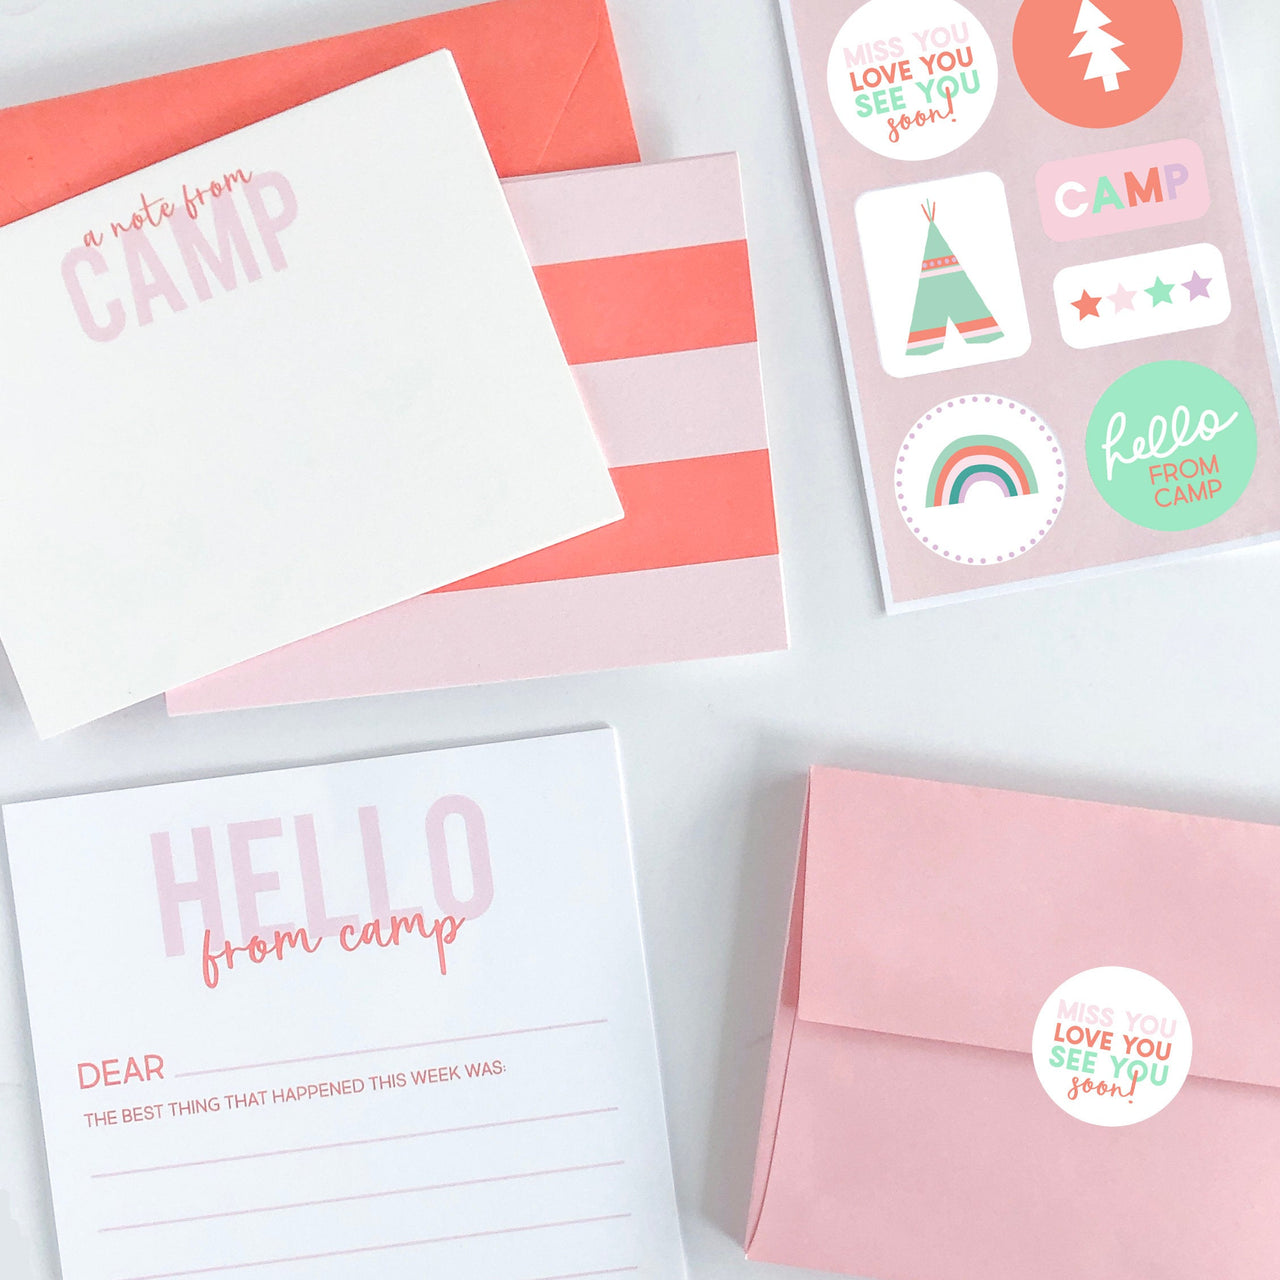 Summer Camp Stationery Set - Pink, Camp, Summer, Camp Fill In, Kids Stationery, Camp Sets, Summer camp notecards, Camp gifts - Joy Creative Shop